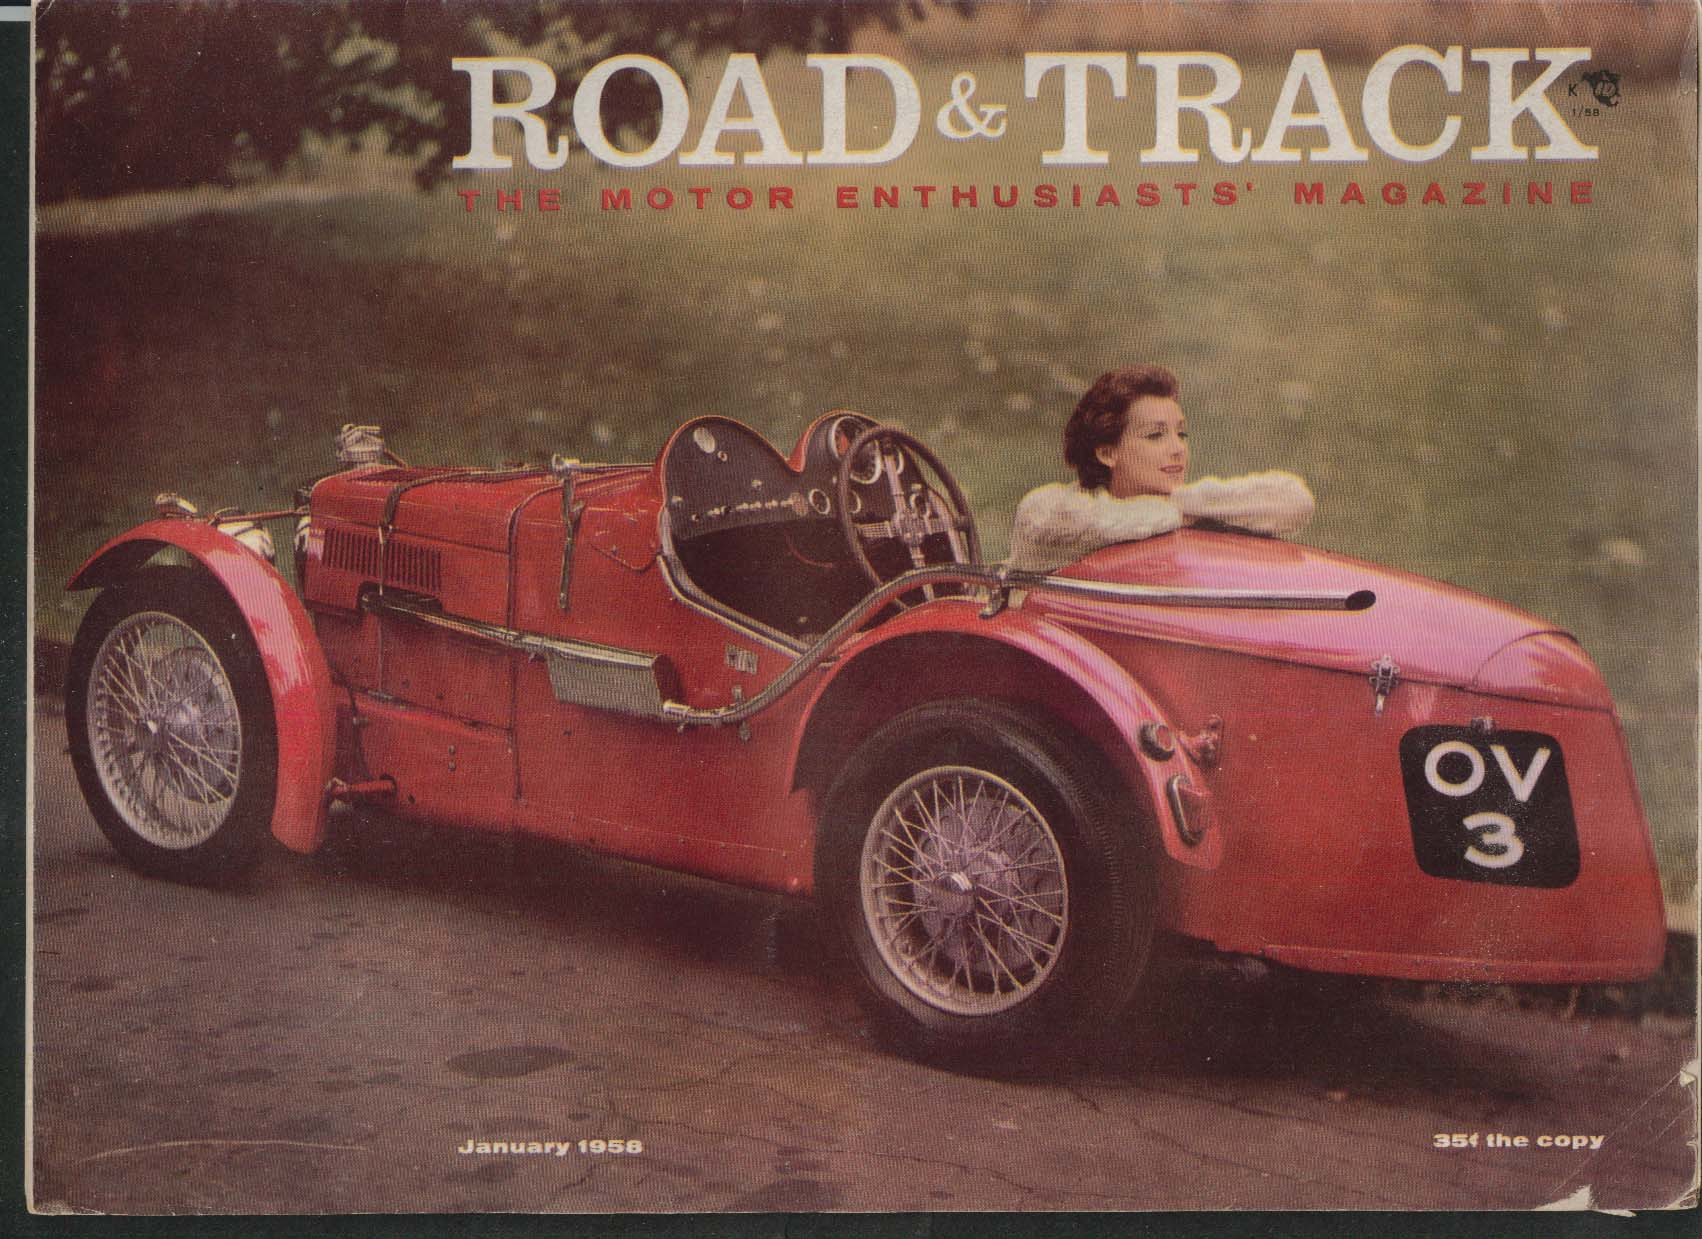 ROAD & TRACK Rolls-Royce Phanton III Mercedes 300-SL Vauxhall road tests 1 1958